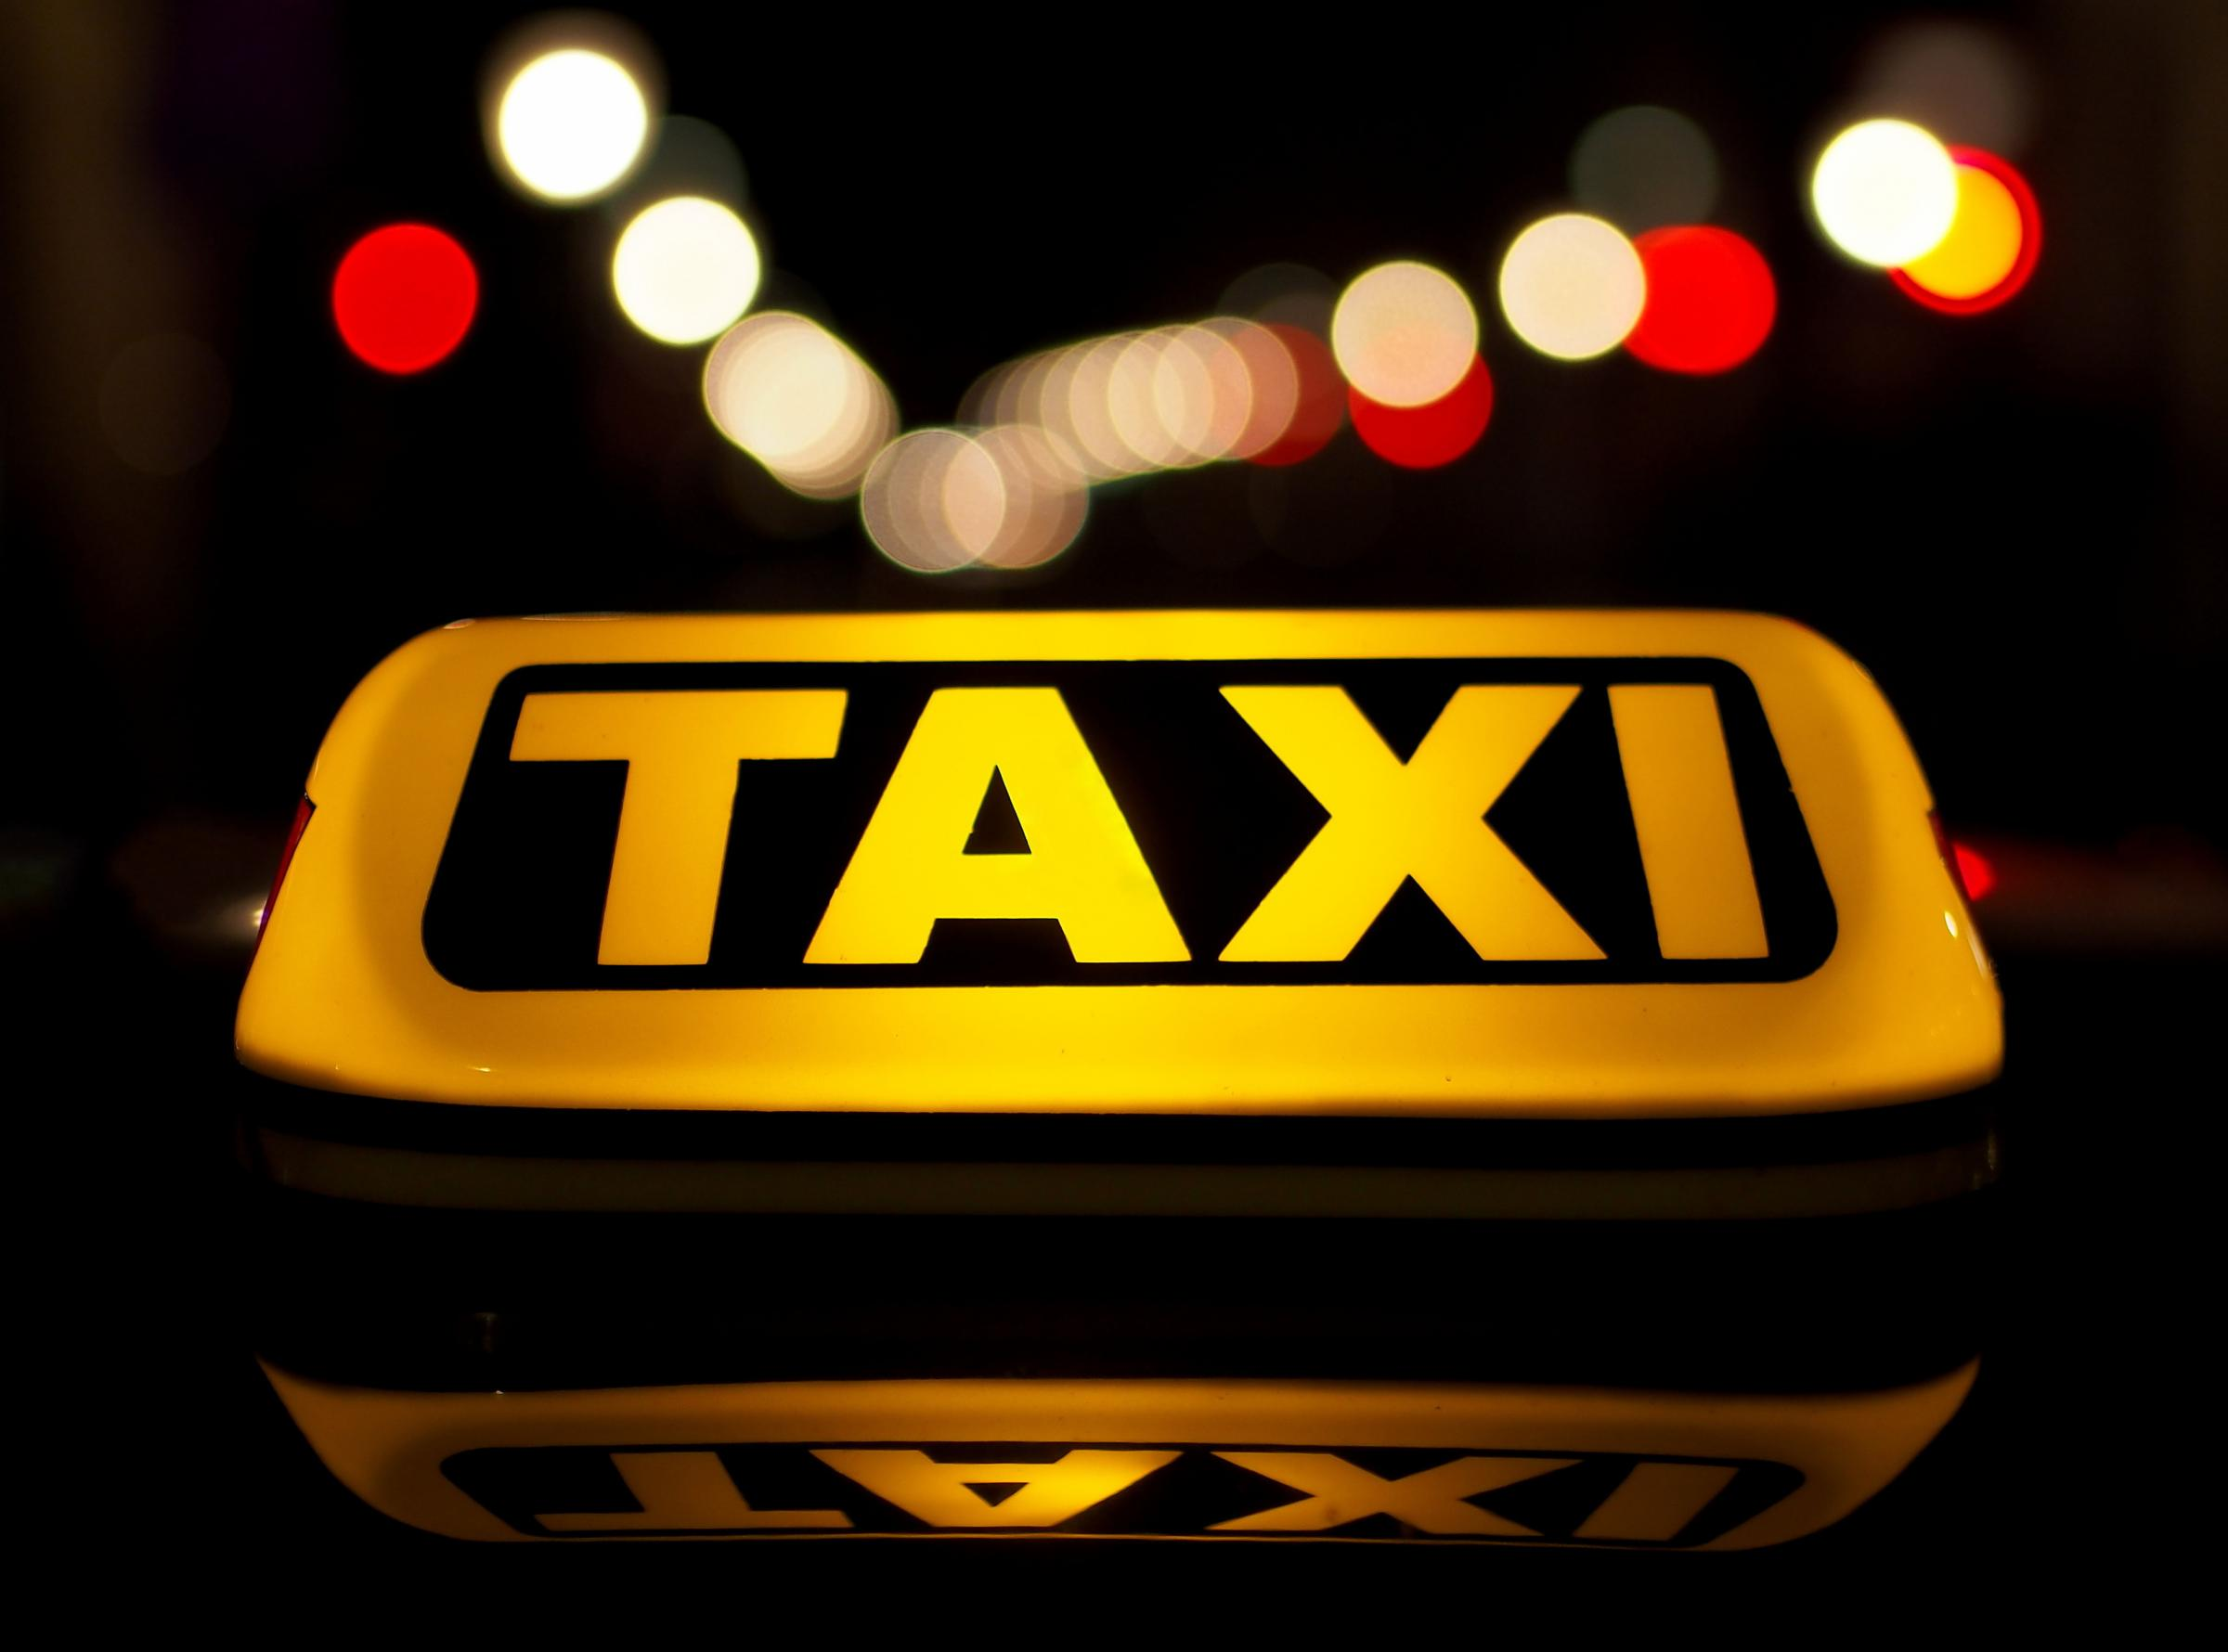 Taxi drivers could soon have to pass English tests